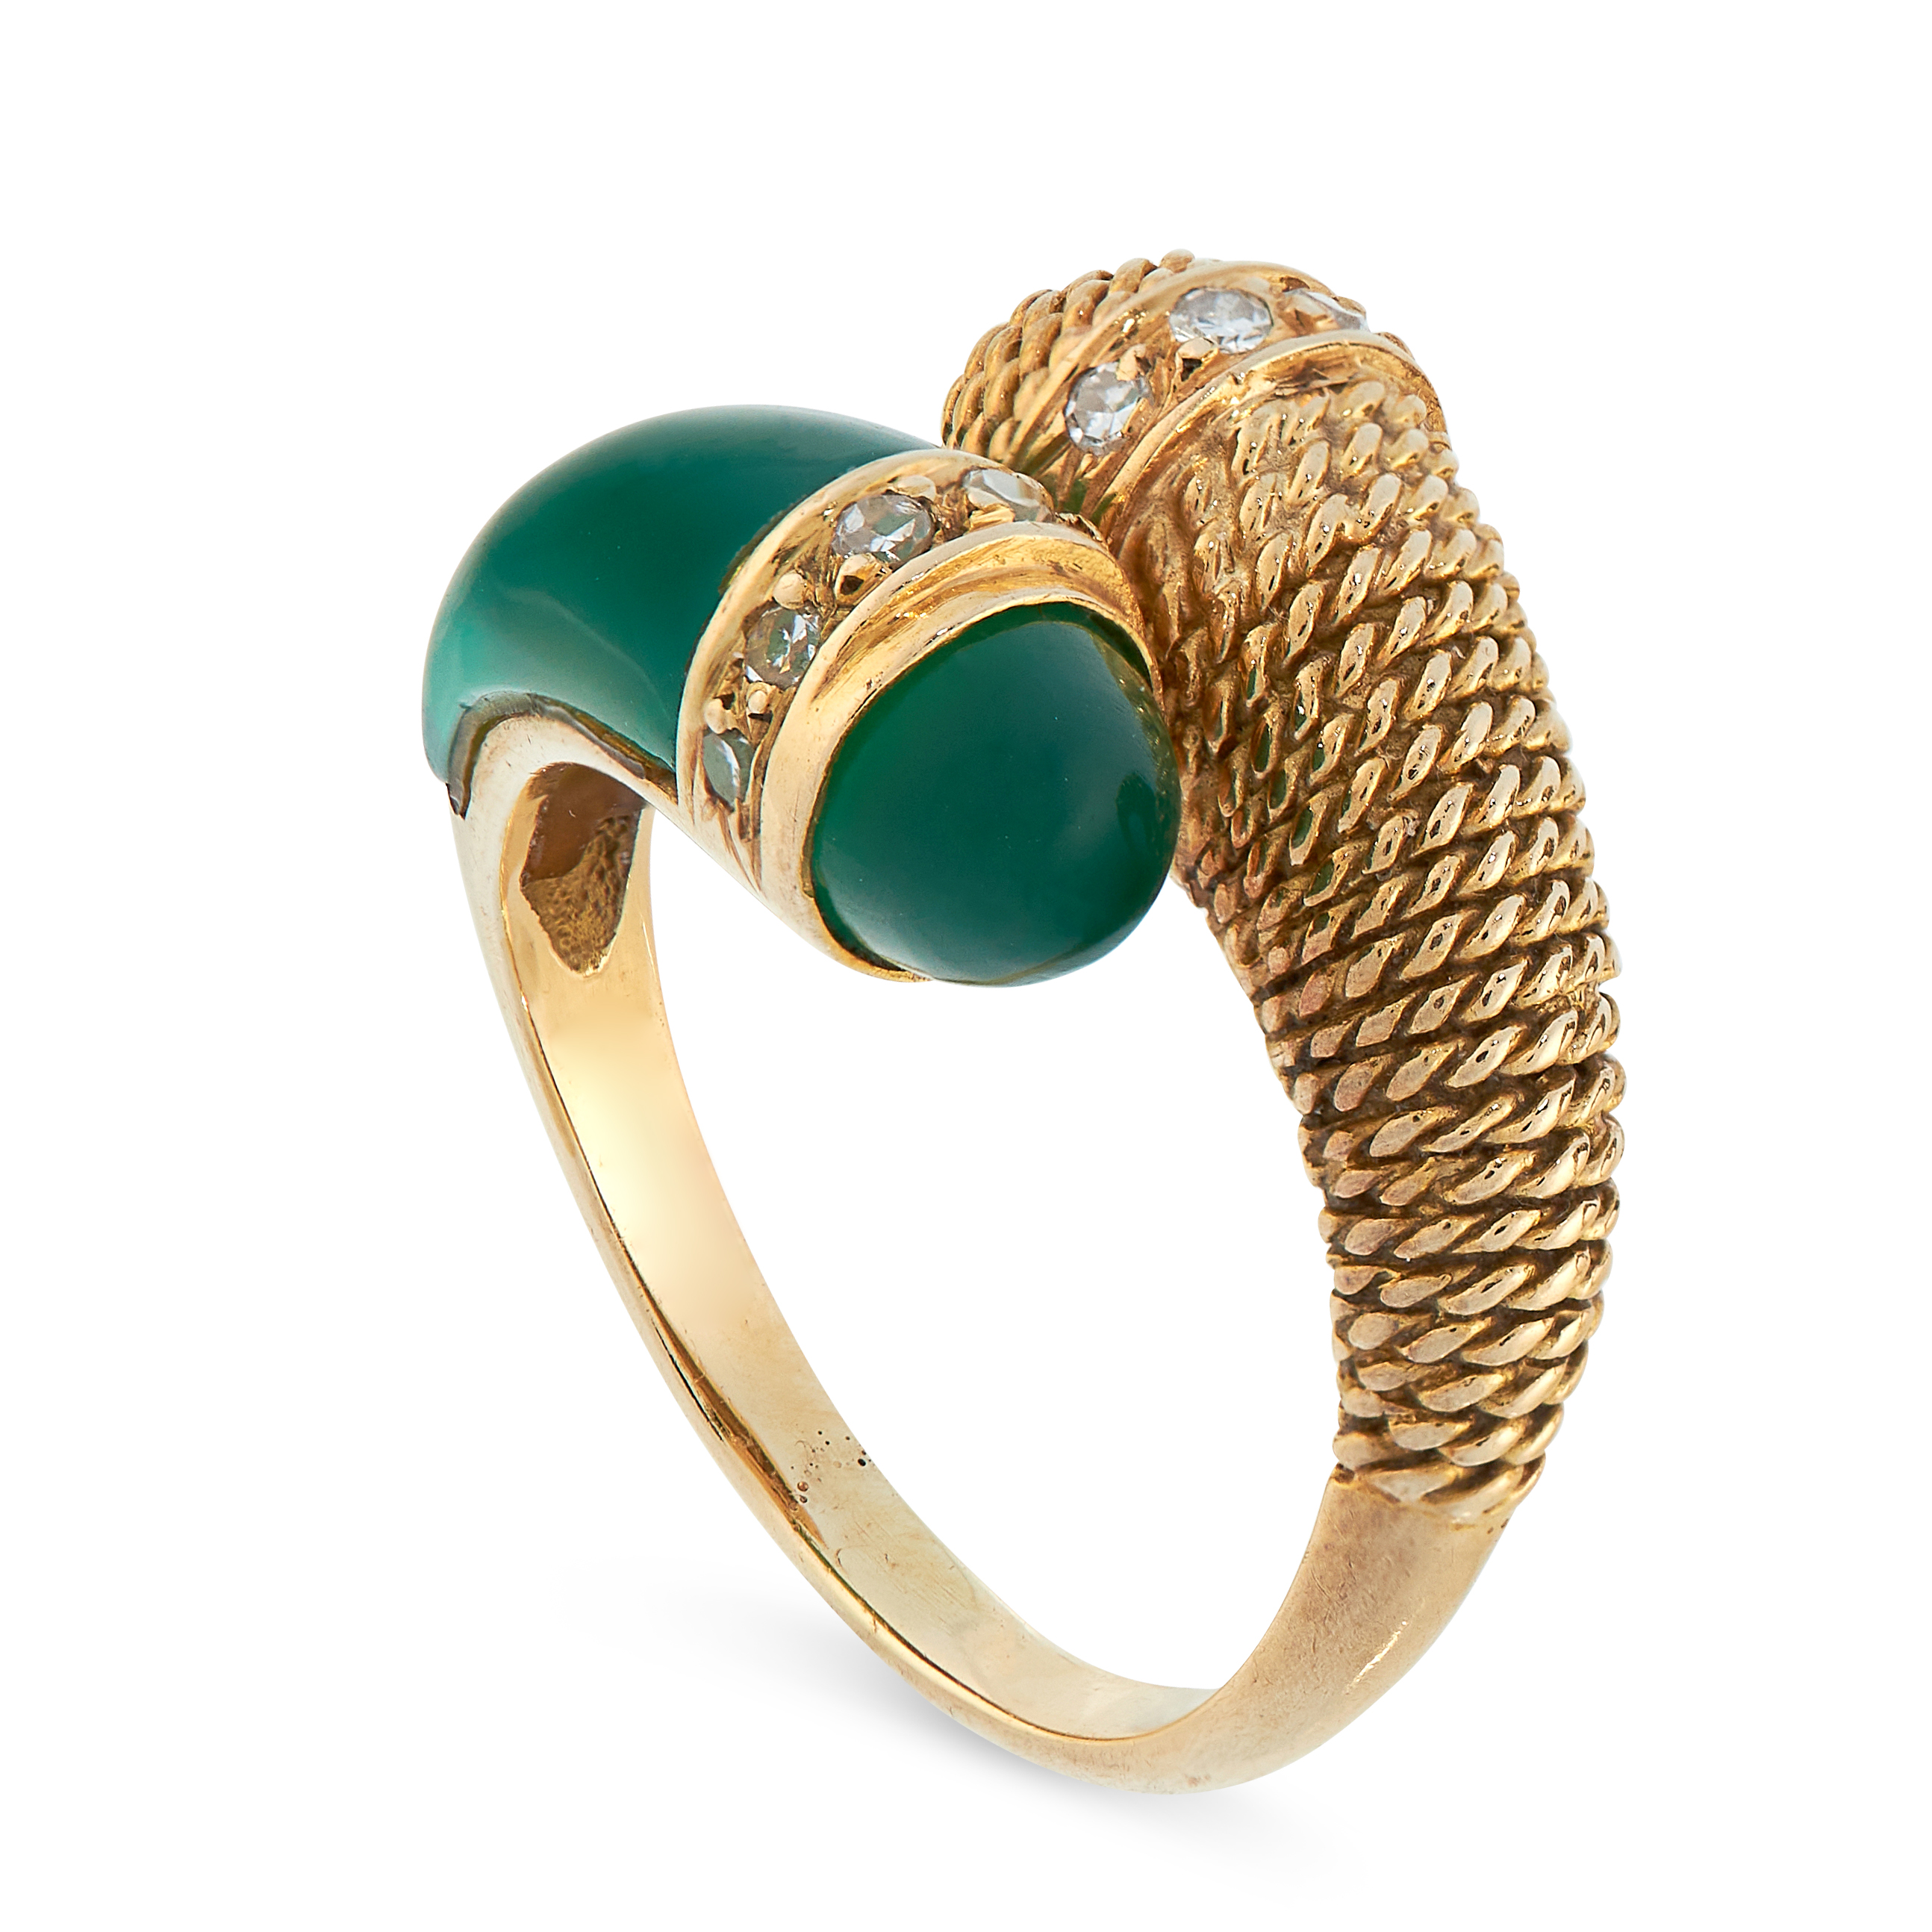 VINTAGE CHRYSOPRASE AND DIAMOND RING, MAUBOUSSIN in 18ct yellow gold, in toi et moi design, set with - Image 2 of 3